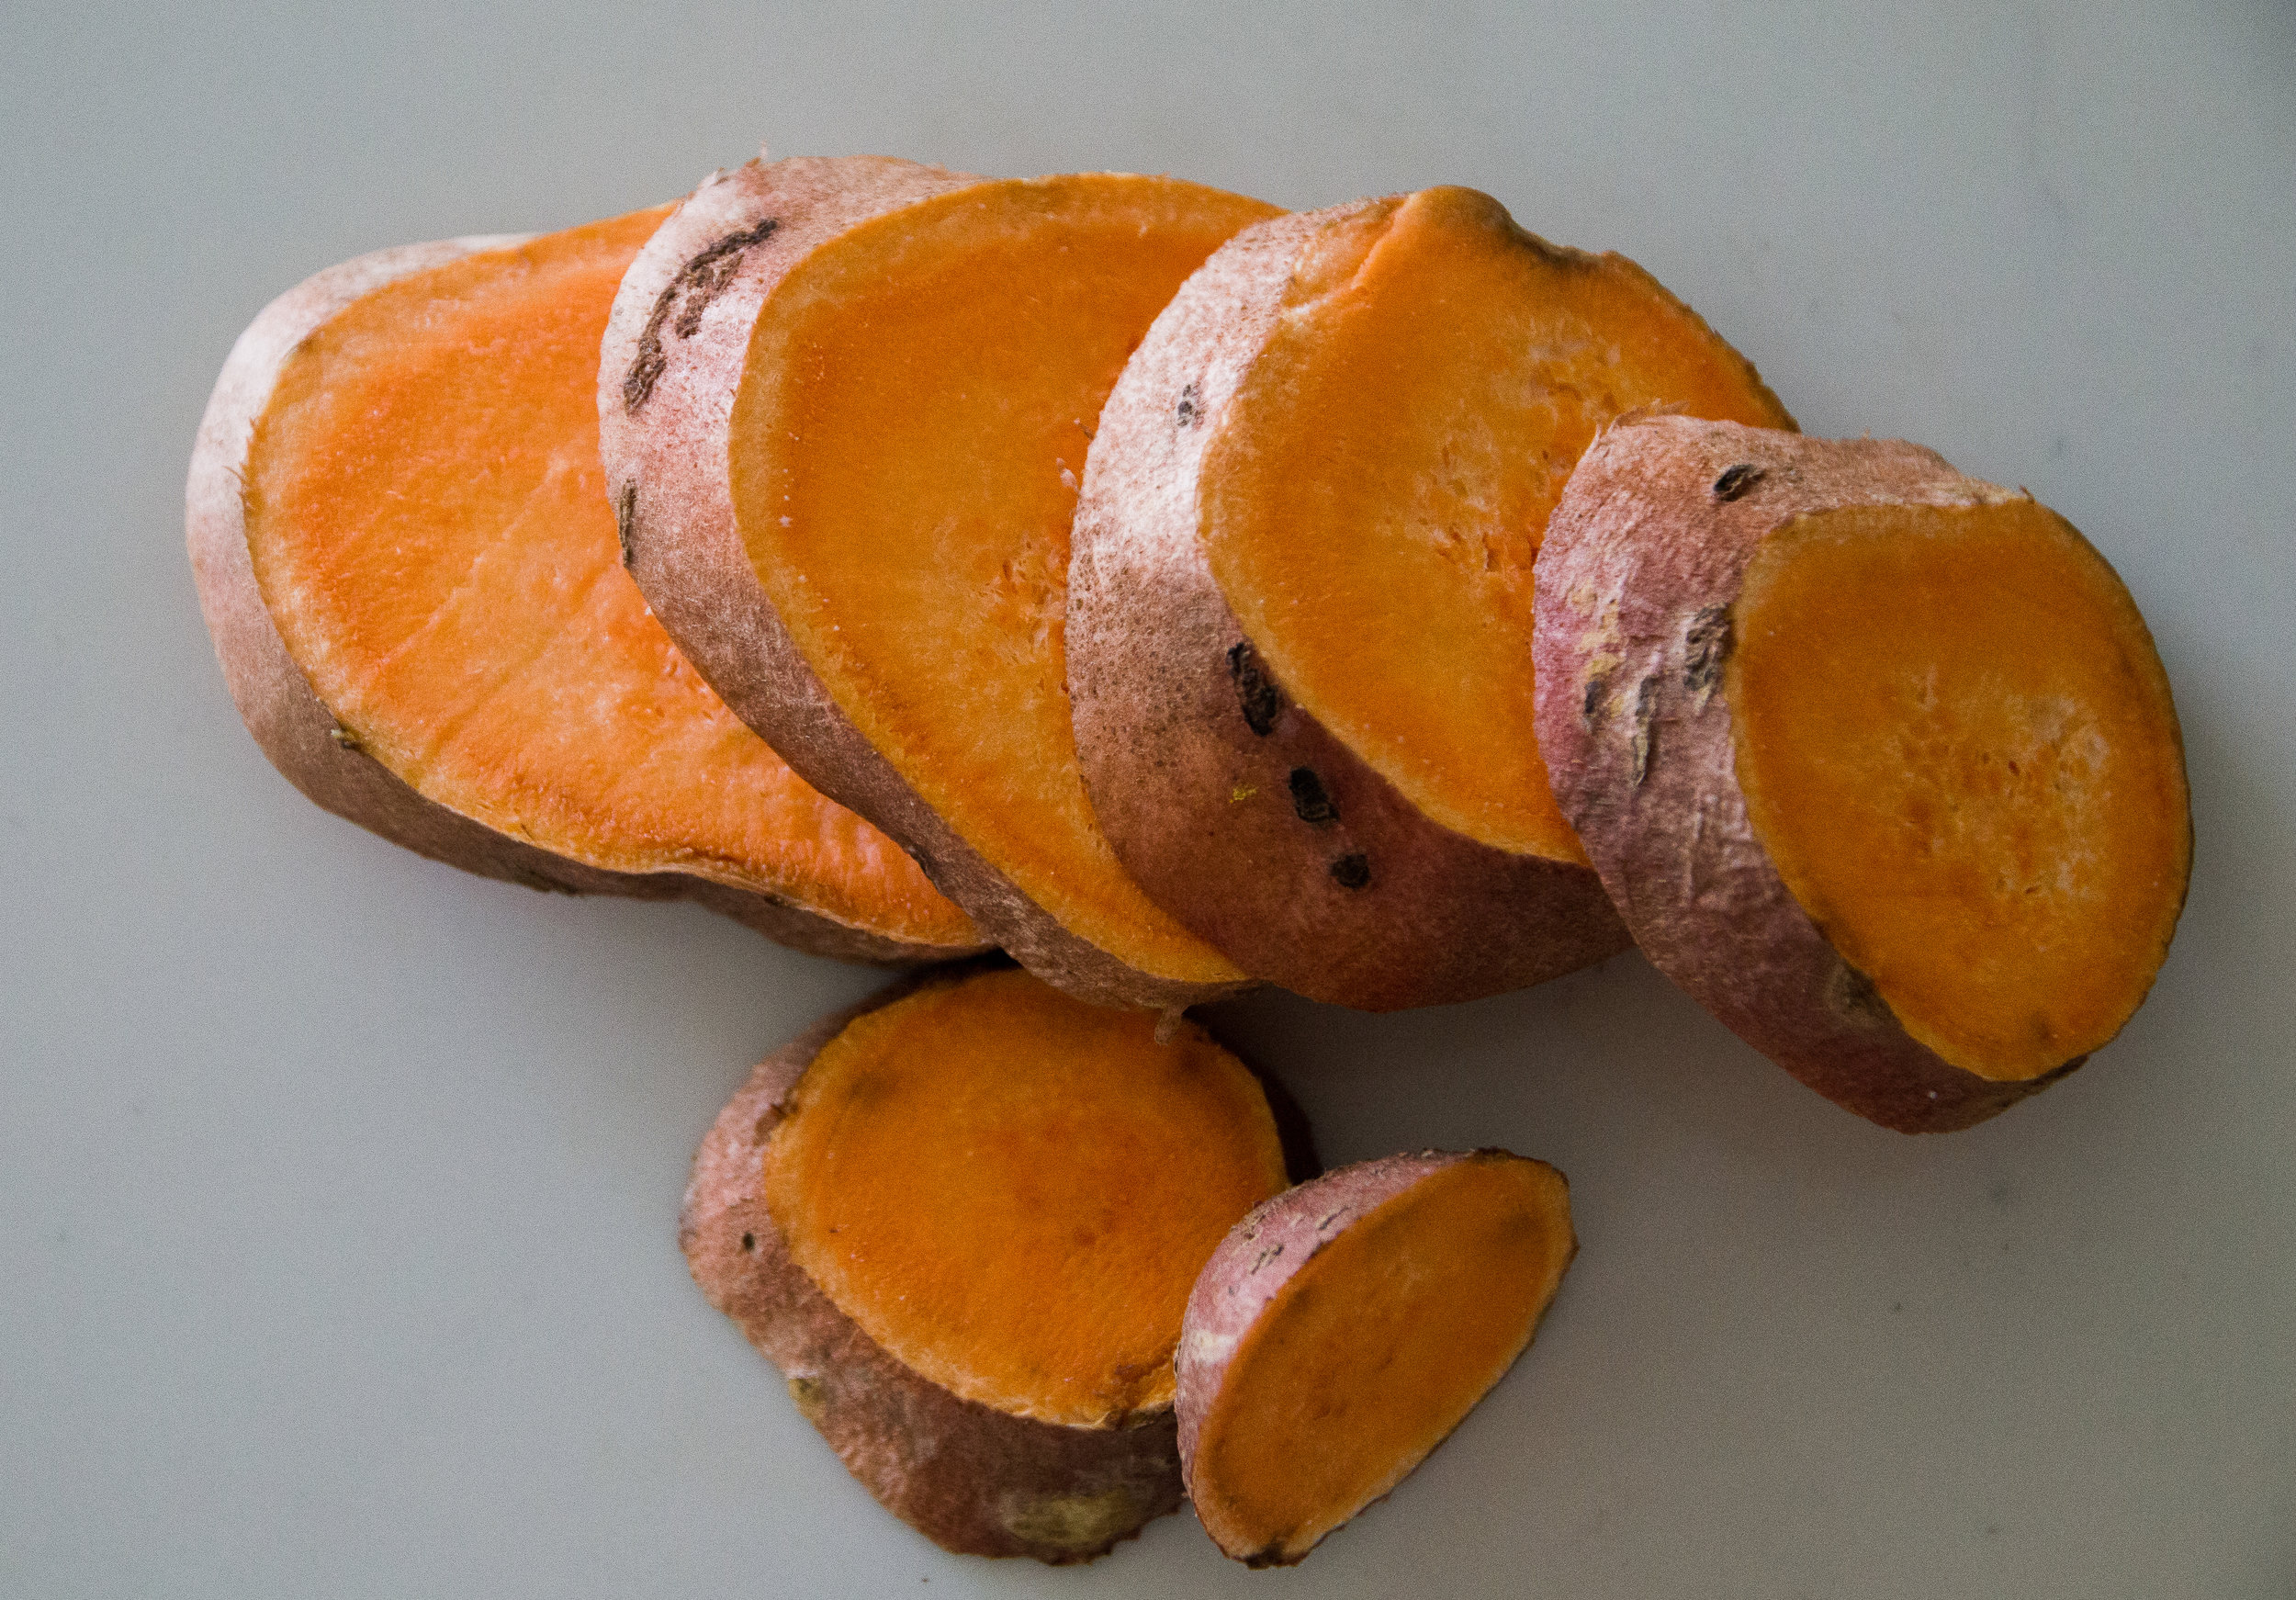 Sweet potatoes are a great option for Vitamin A!